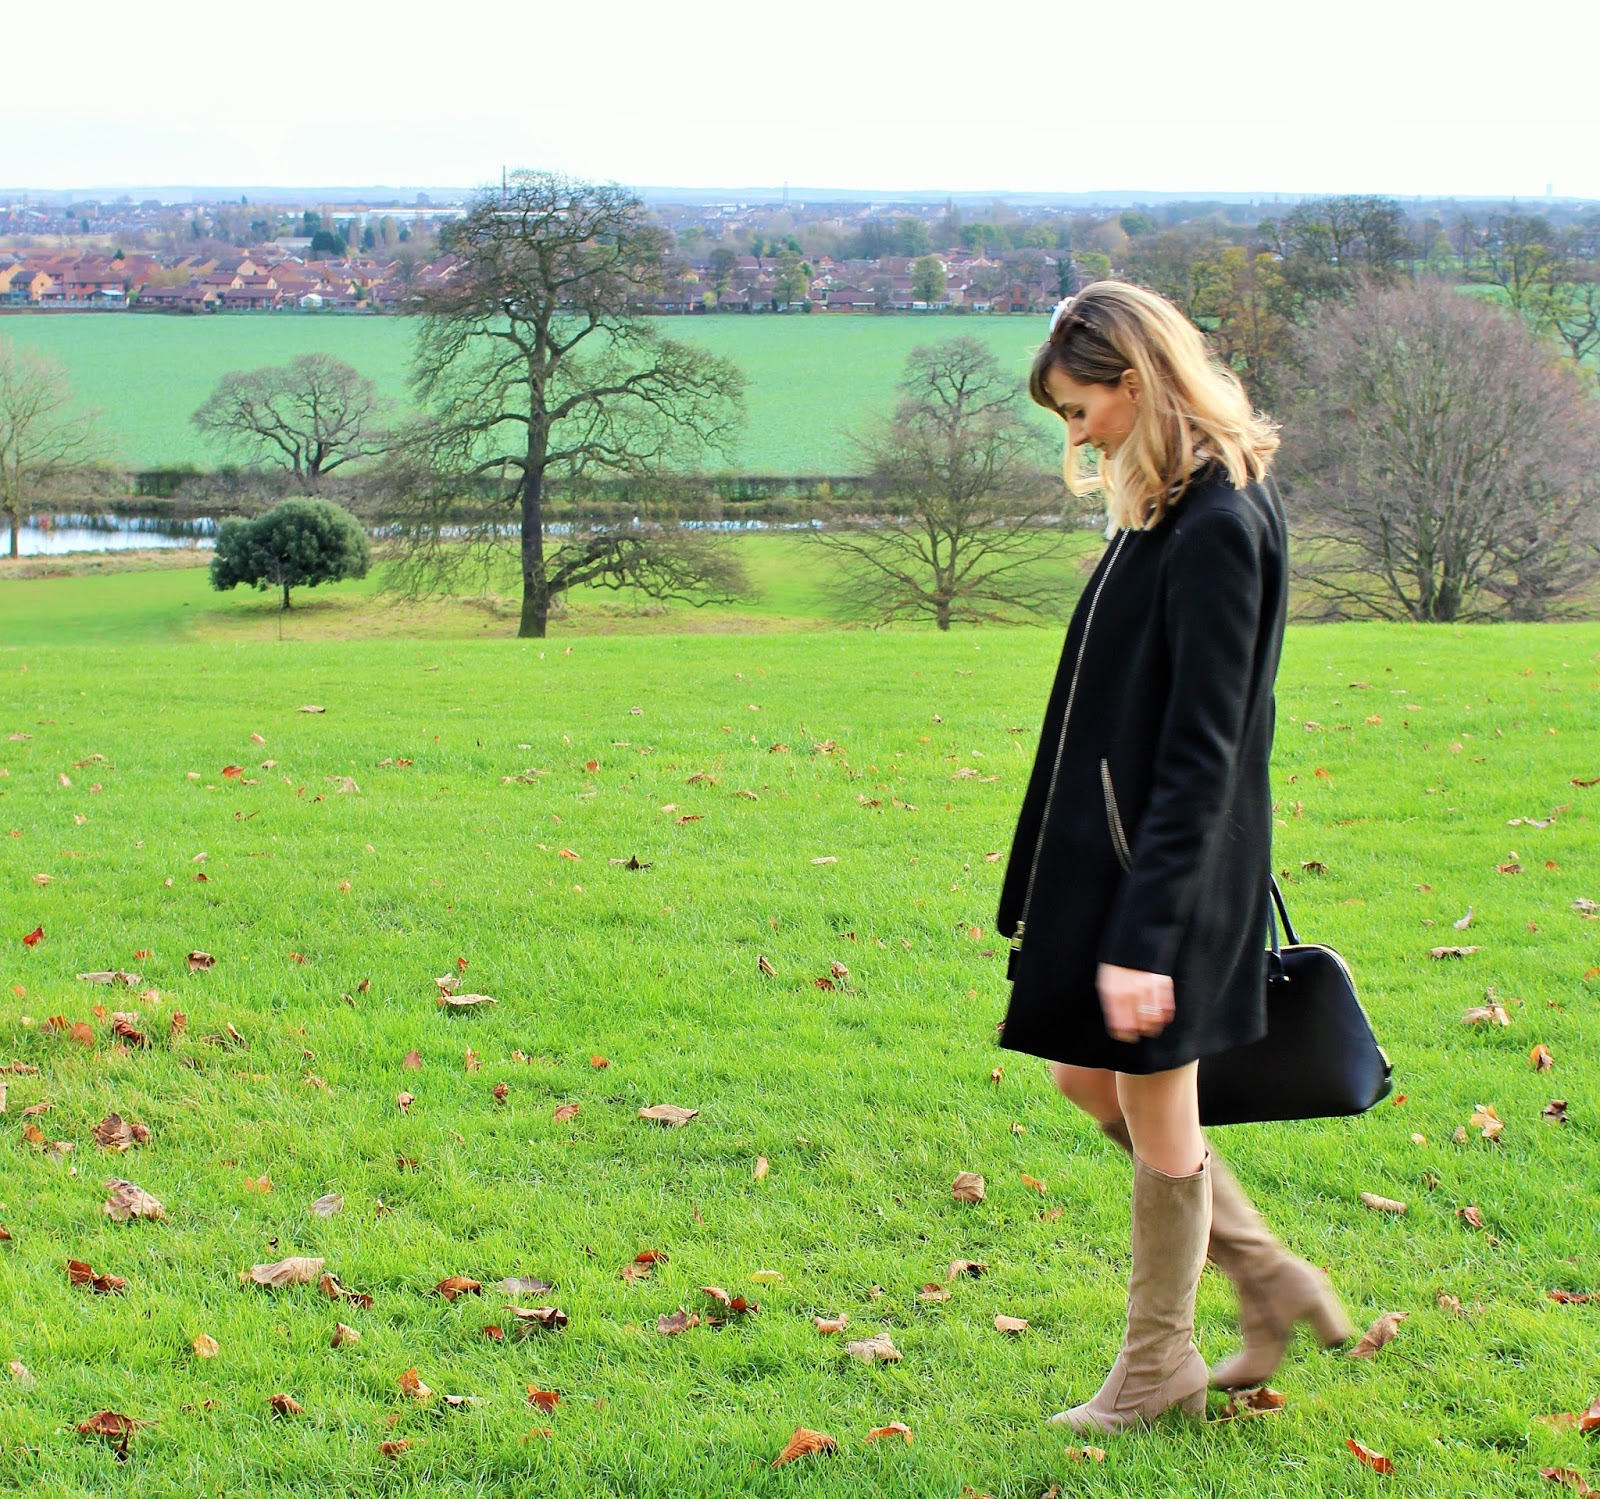 OOTD featuring Topshop, Zara and Online Avenue - Sixties Style with Cream Knee High Boots